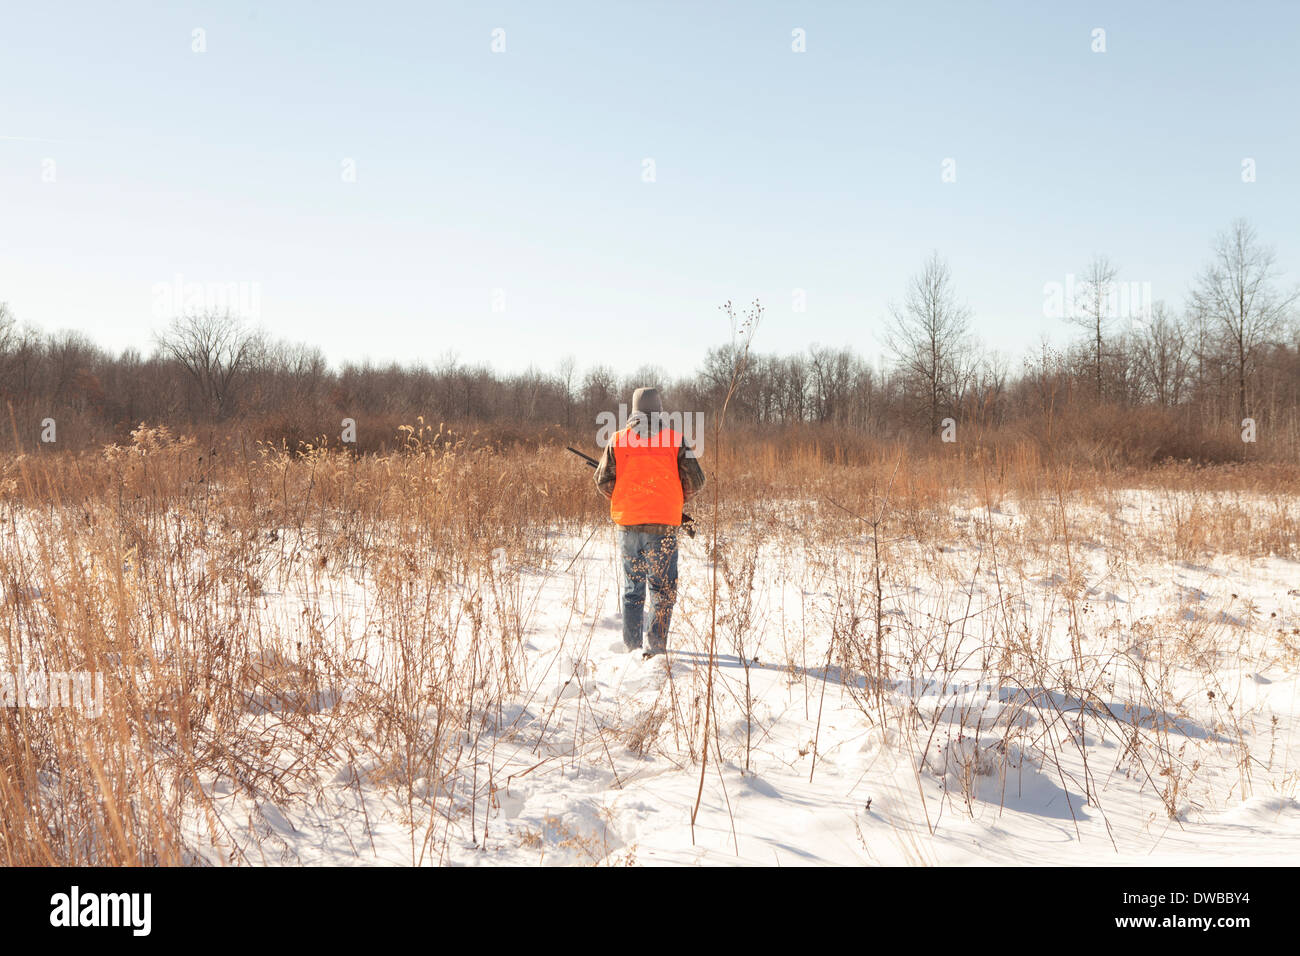 Teenage boy out hunting in Petersburg State Game Area, Michigan, USA - Stock Image